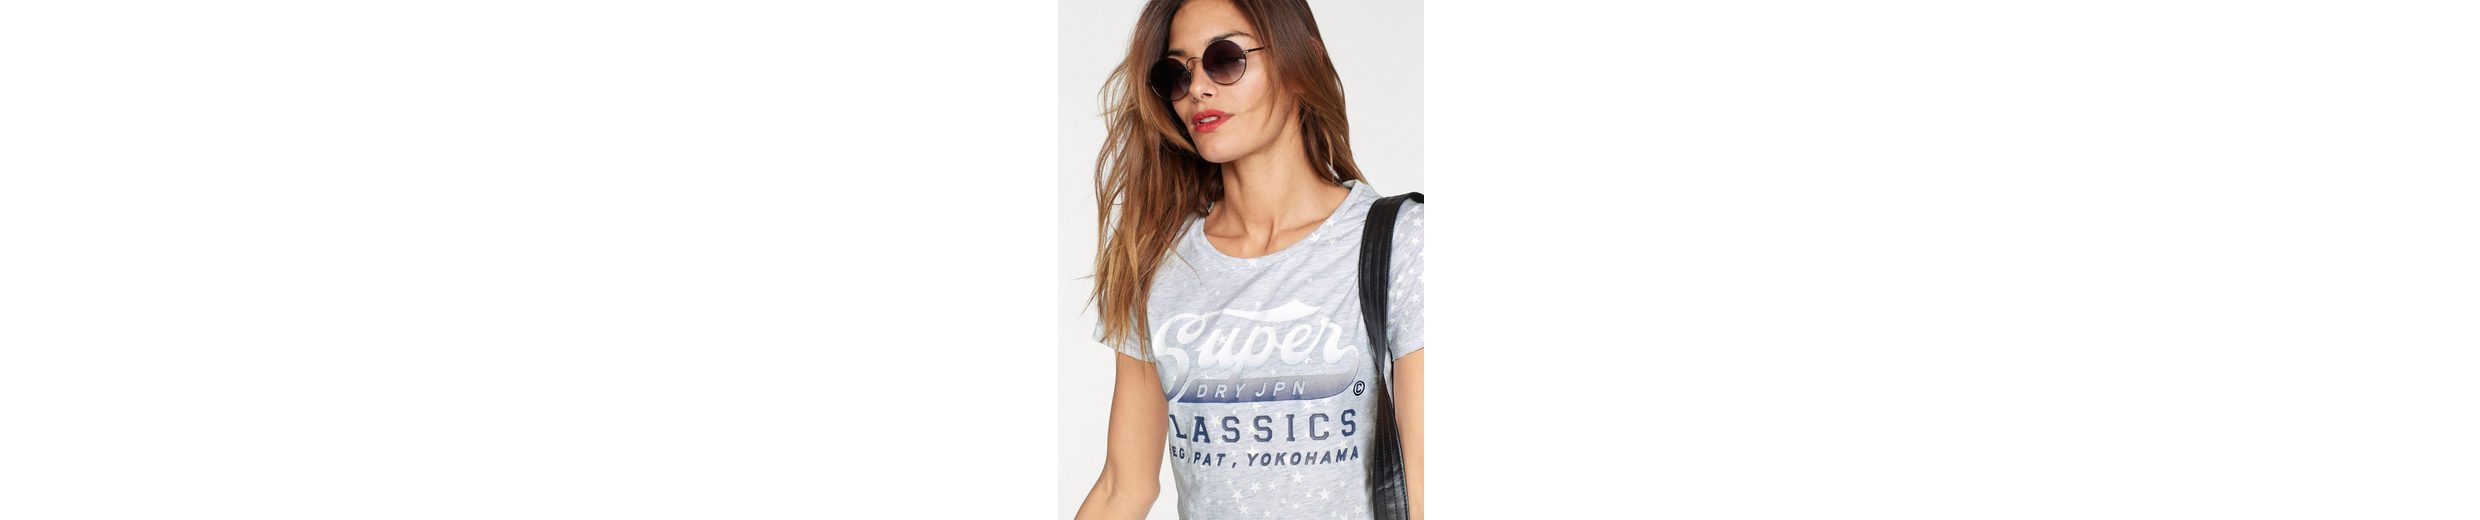 Superdry STAR CLASSIC CLASSIC ENTRY ENTRY mit STAR Logo Logo Print TEE TEE Rundhalsshirt Superdry mit Rundhalsshirt CCvq0aw